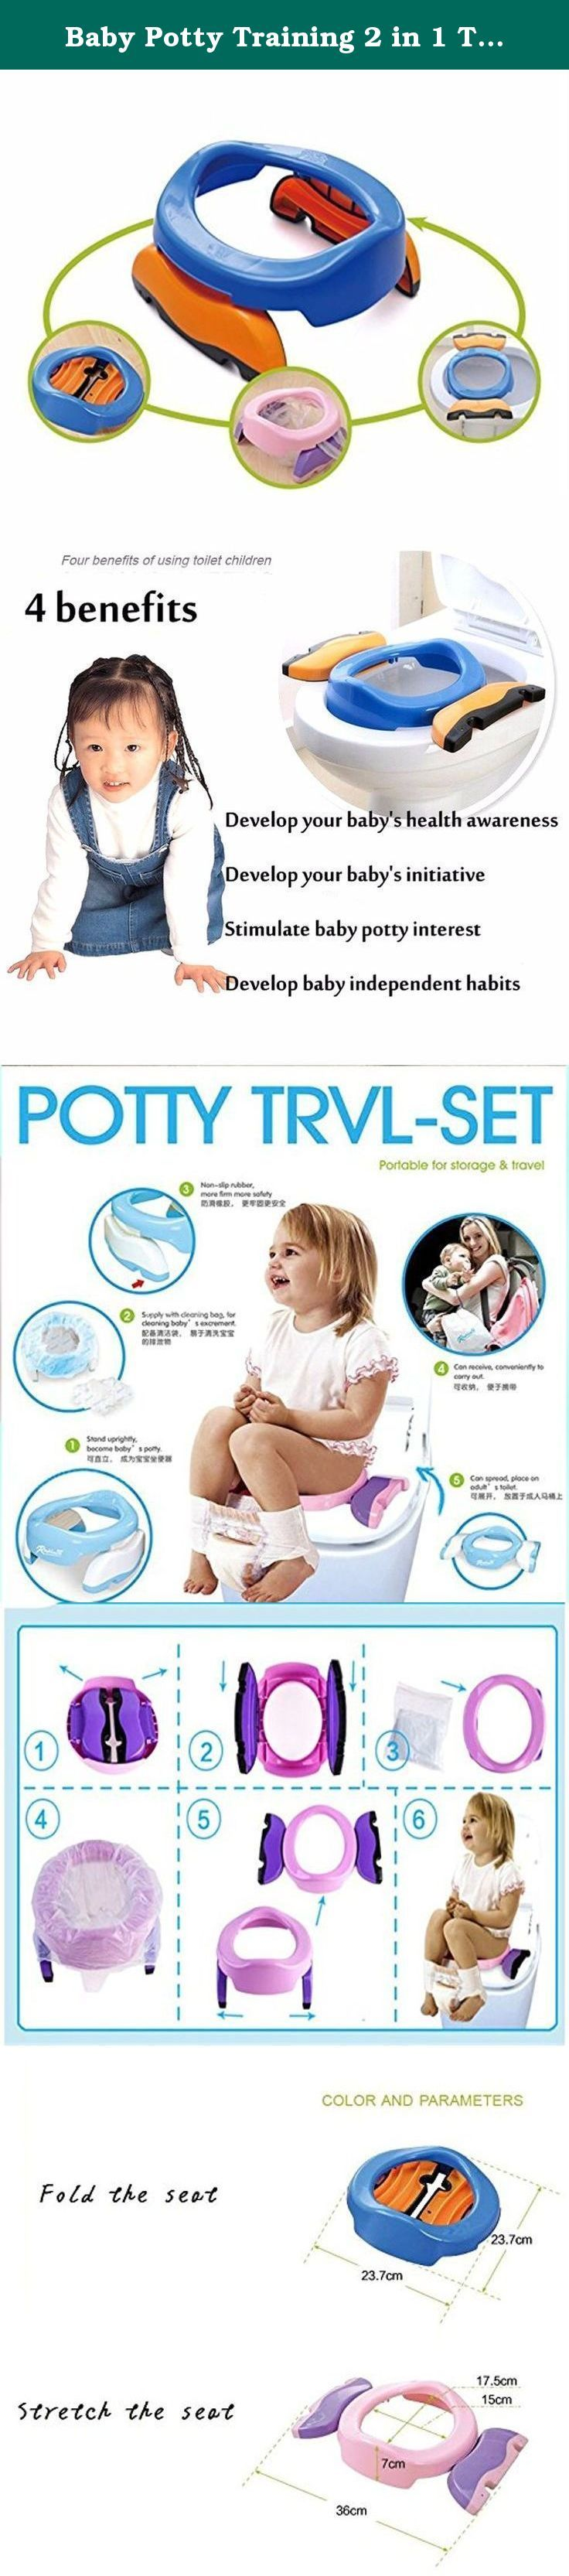 Baby Potty Training 2 in 1 Toilet Training seat & Seat Cover Foldable Travel Potties Blue Color for Boy age 2 years and Up to 60lbs. Baby Potty Training 2 in 1 Toilet Training seat & Seat Cover Foldable Travel Potties Blue Color for Boy age 2 years and Up to 60lbs.